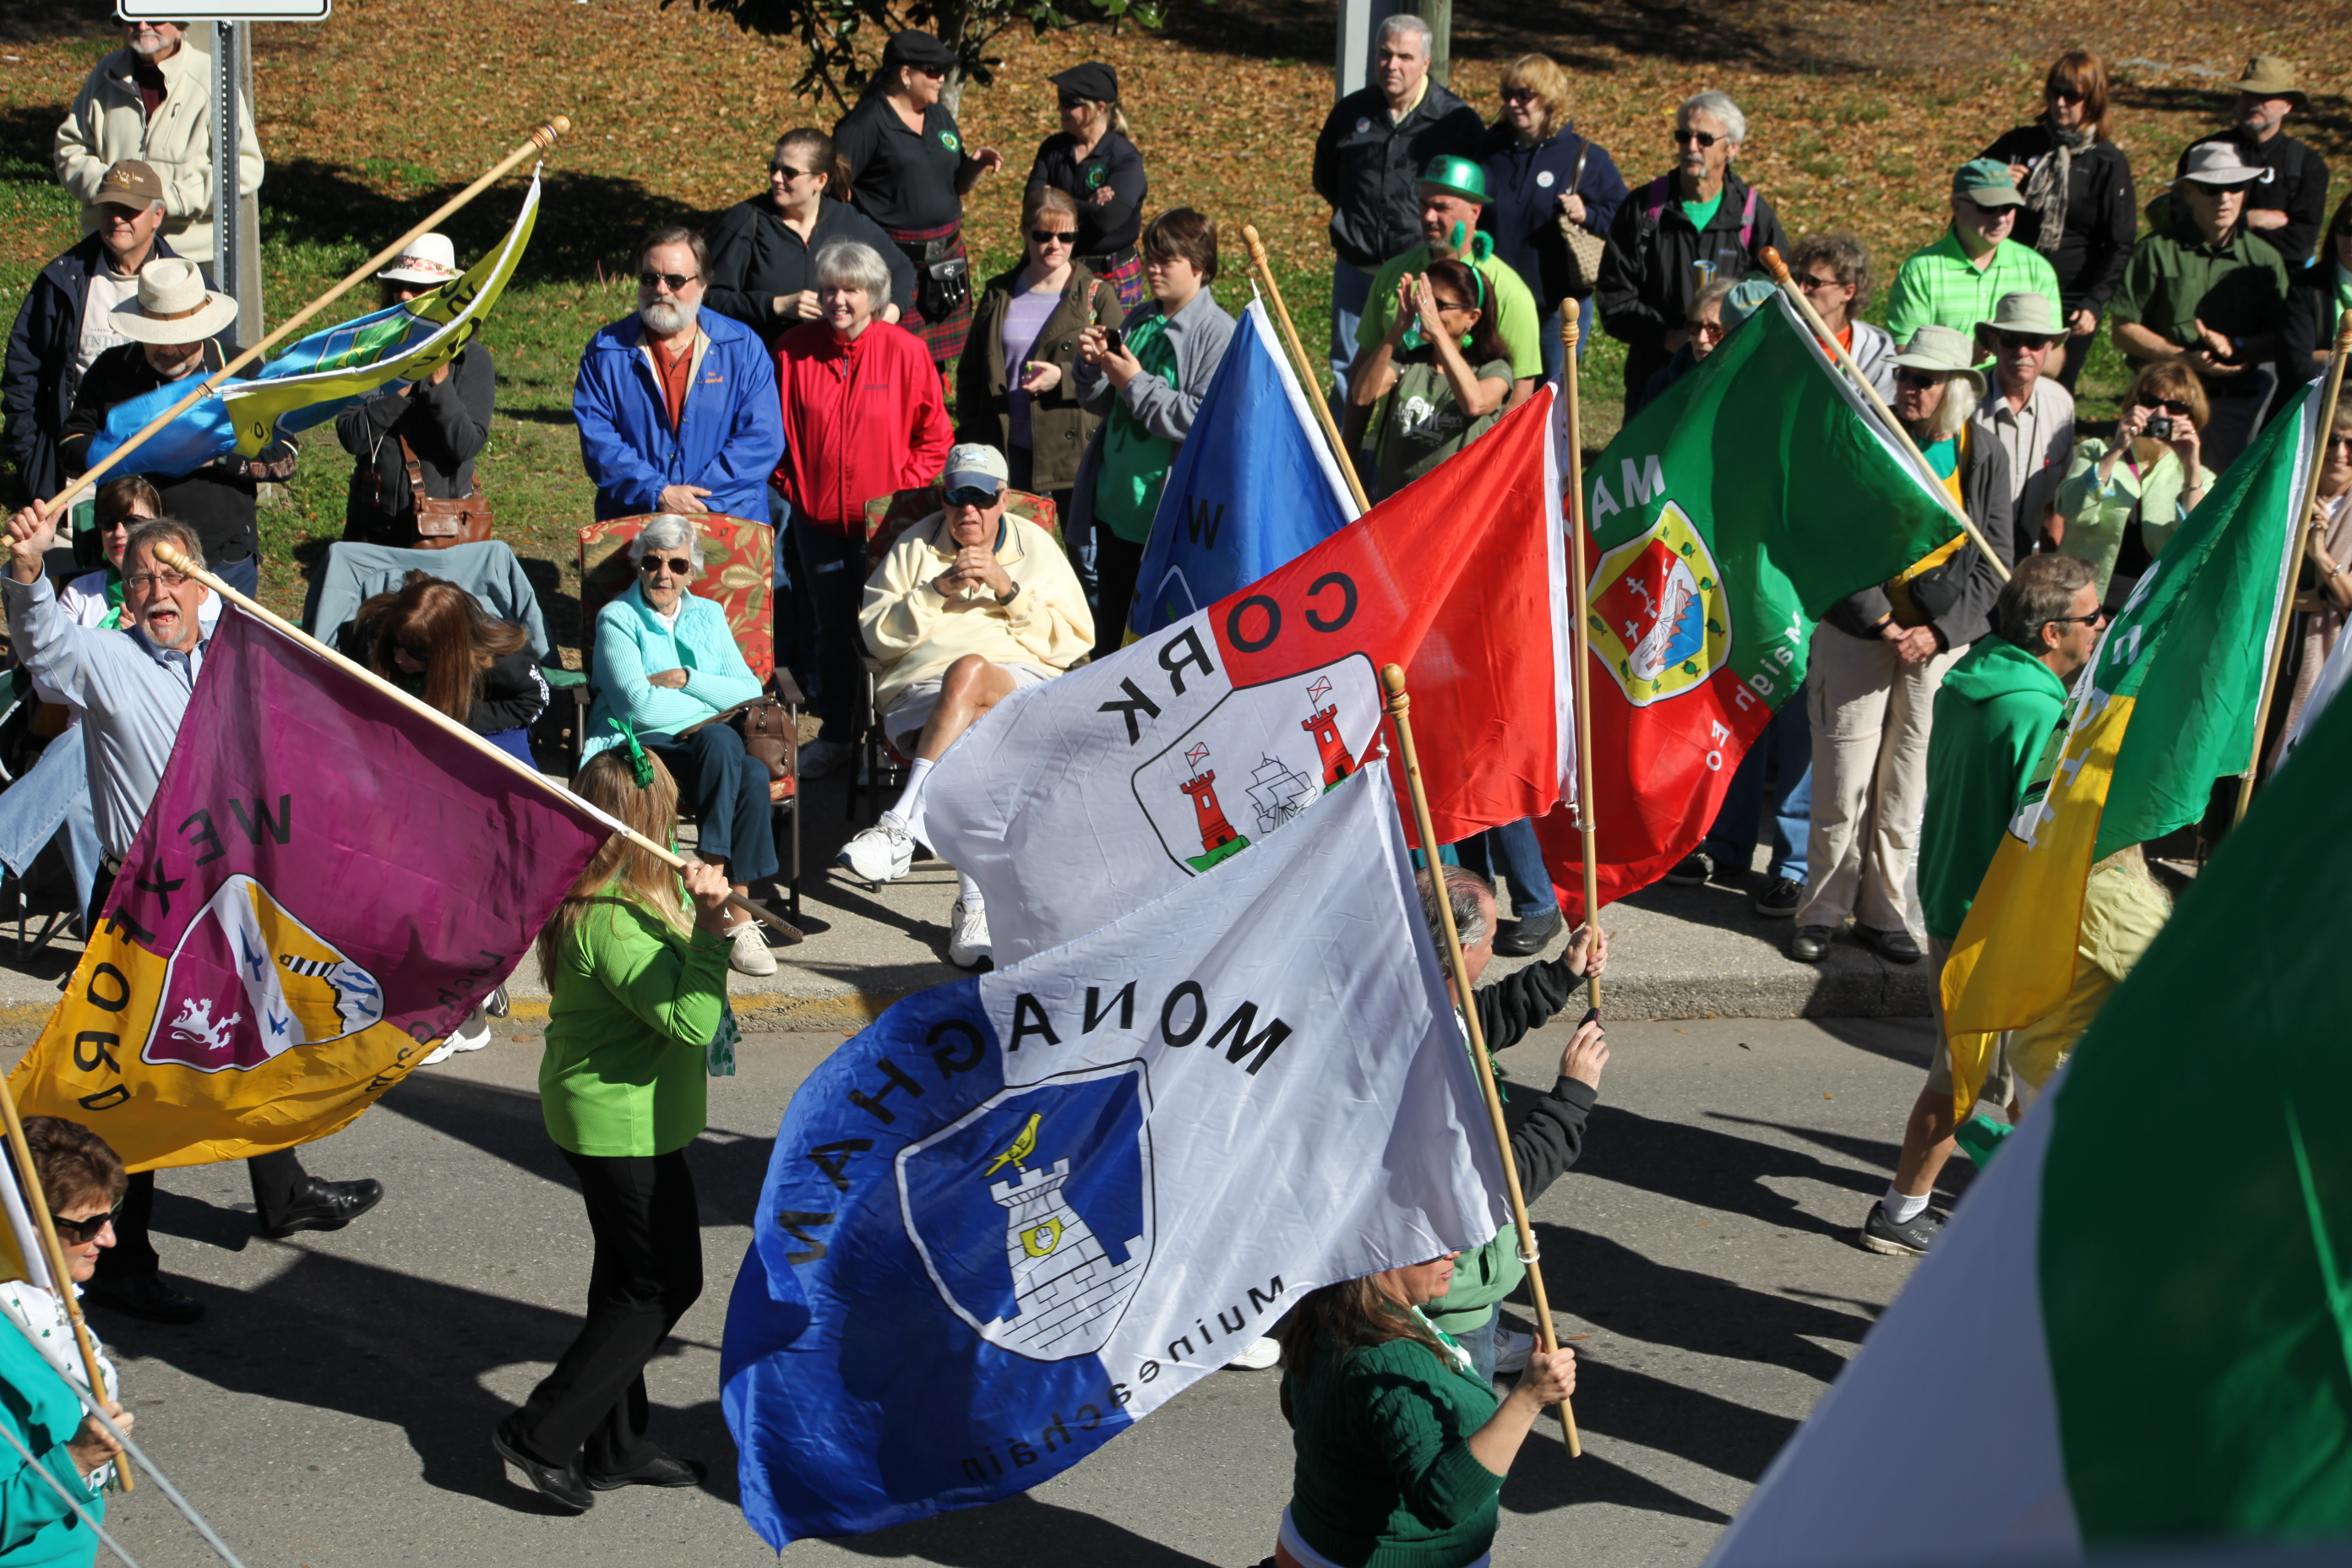 Celtic flags are flown during the 2014 St. Augustine Patrick's Day Parade. This year's event is set for 10 a.m. Saturday, March 14 in downtown St. Augustine. Photo by Renee Unsworth